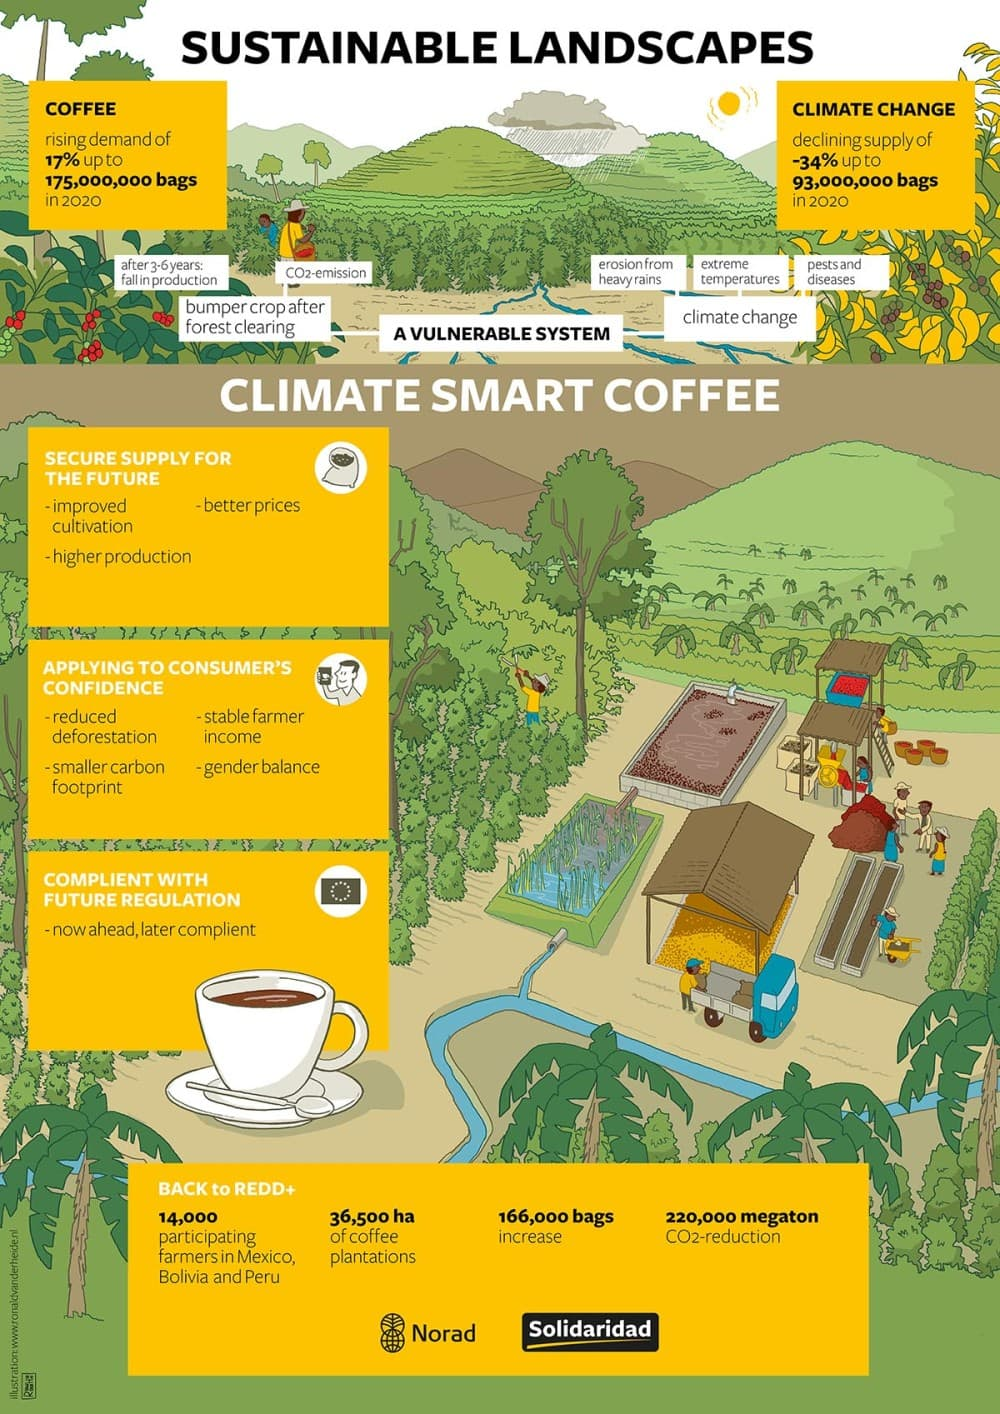 infographics sustainability landscapes coffee roaster crops Mexico Bolivia Peru diseases hand drawn conference Solidaridad climate smart agriculture water drought communities story telling rainforest Solidaridad NGO ontwikkelingssamenwerking